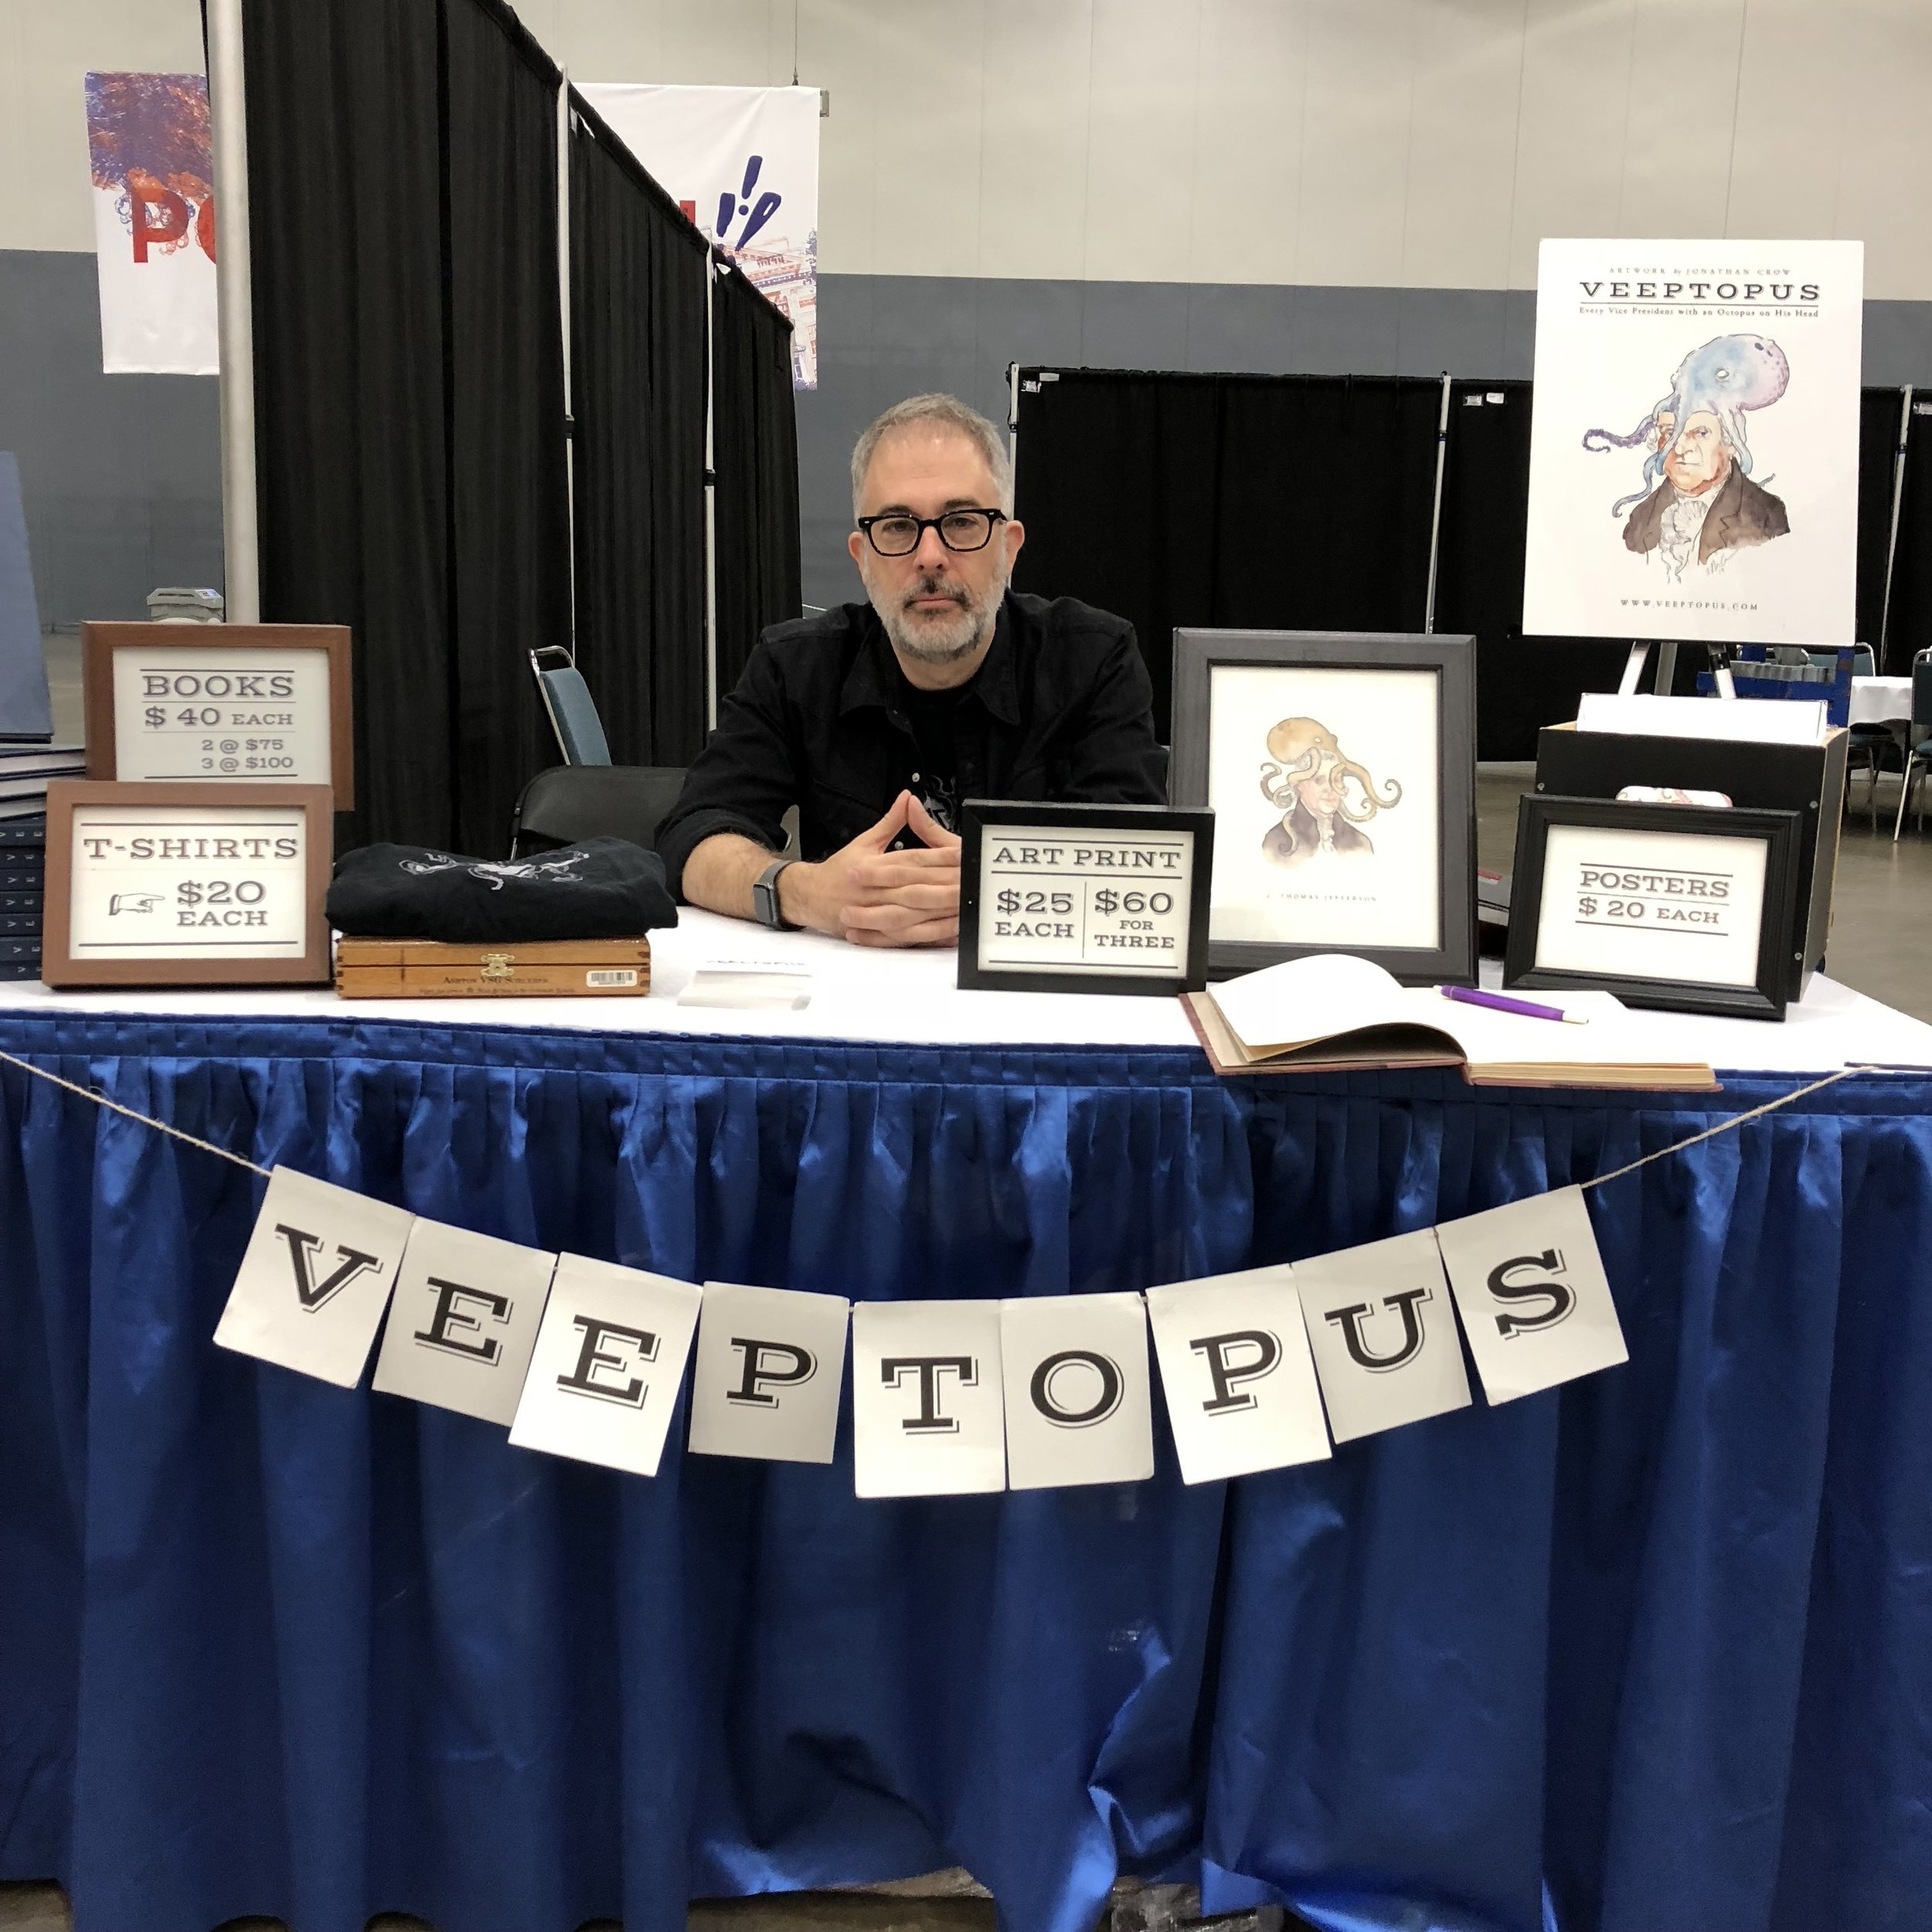 At the Veeptopus table. Photo: Ted Mills